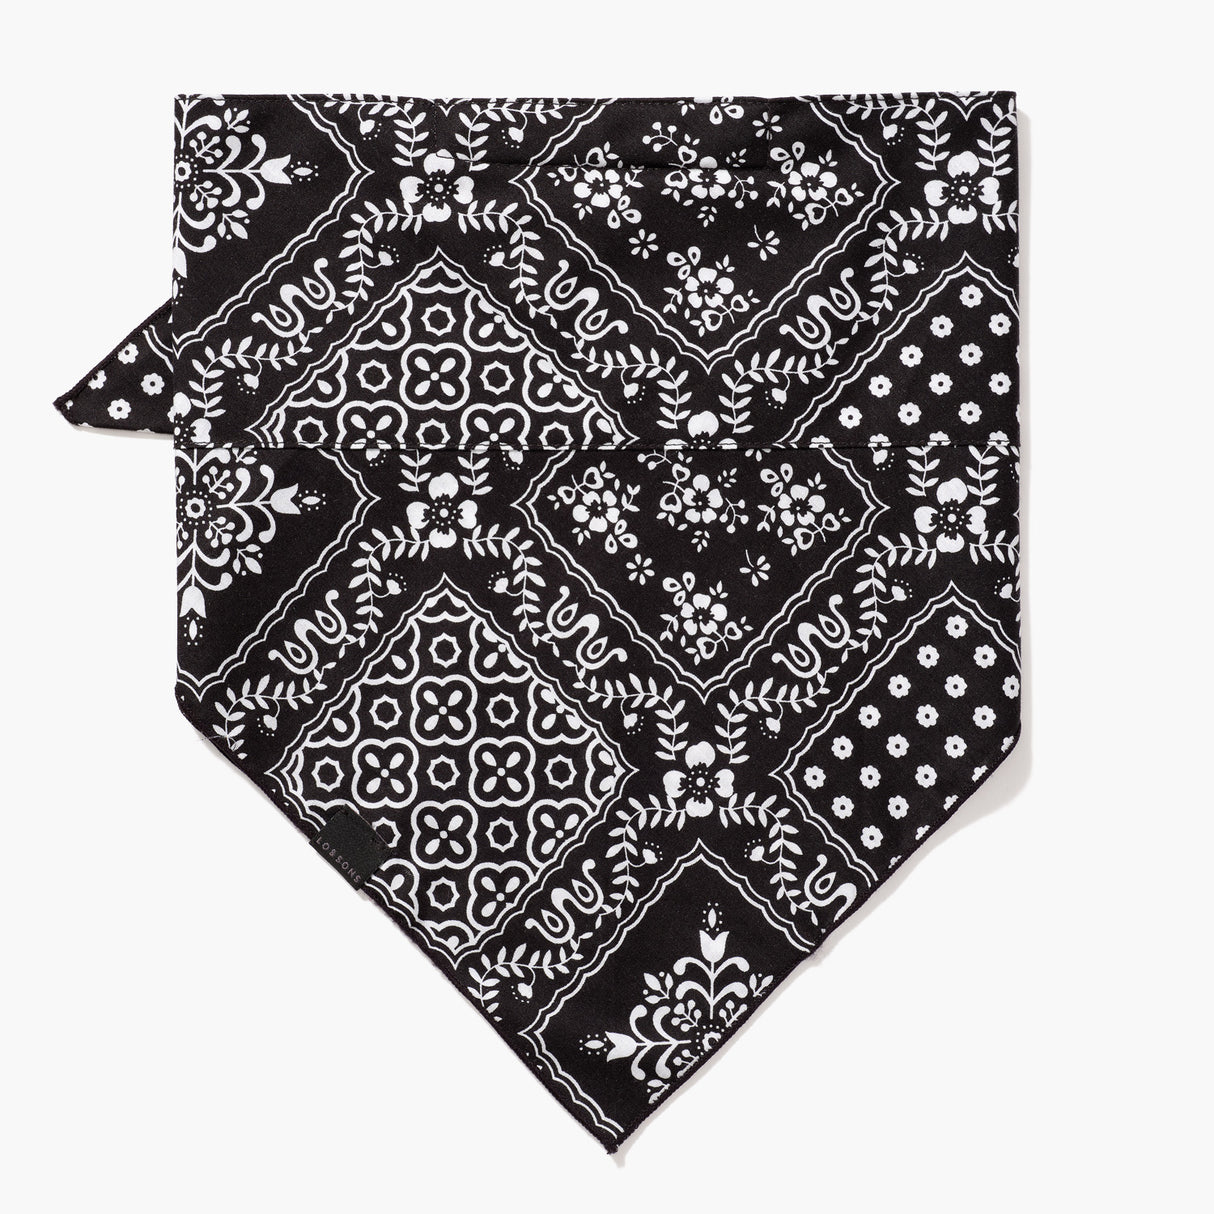 Front - 4 Layer Bandana Mask - Cotton - Black Square Pattern - Small Accessory - Lo & Sons